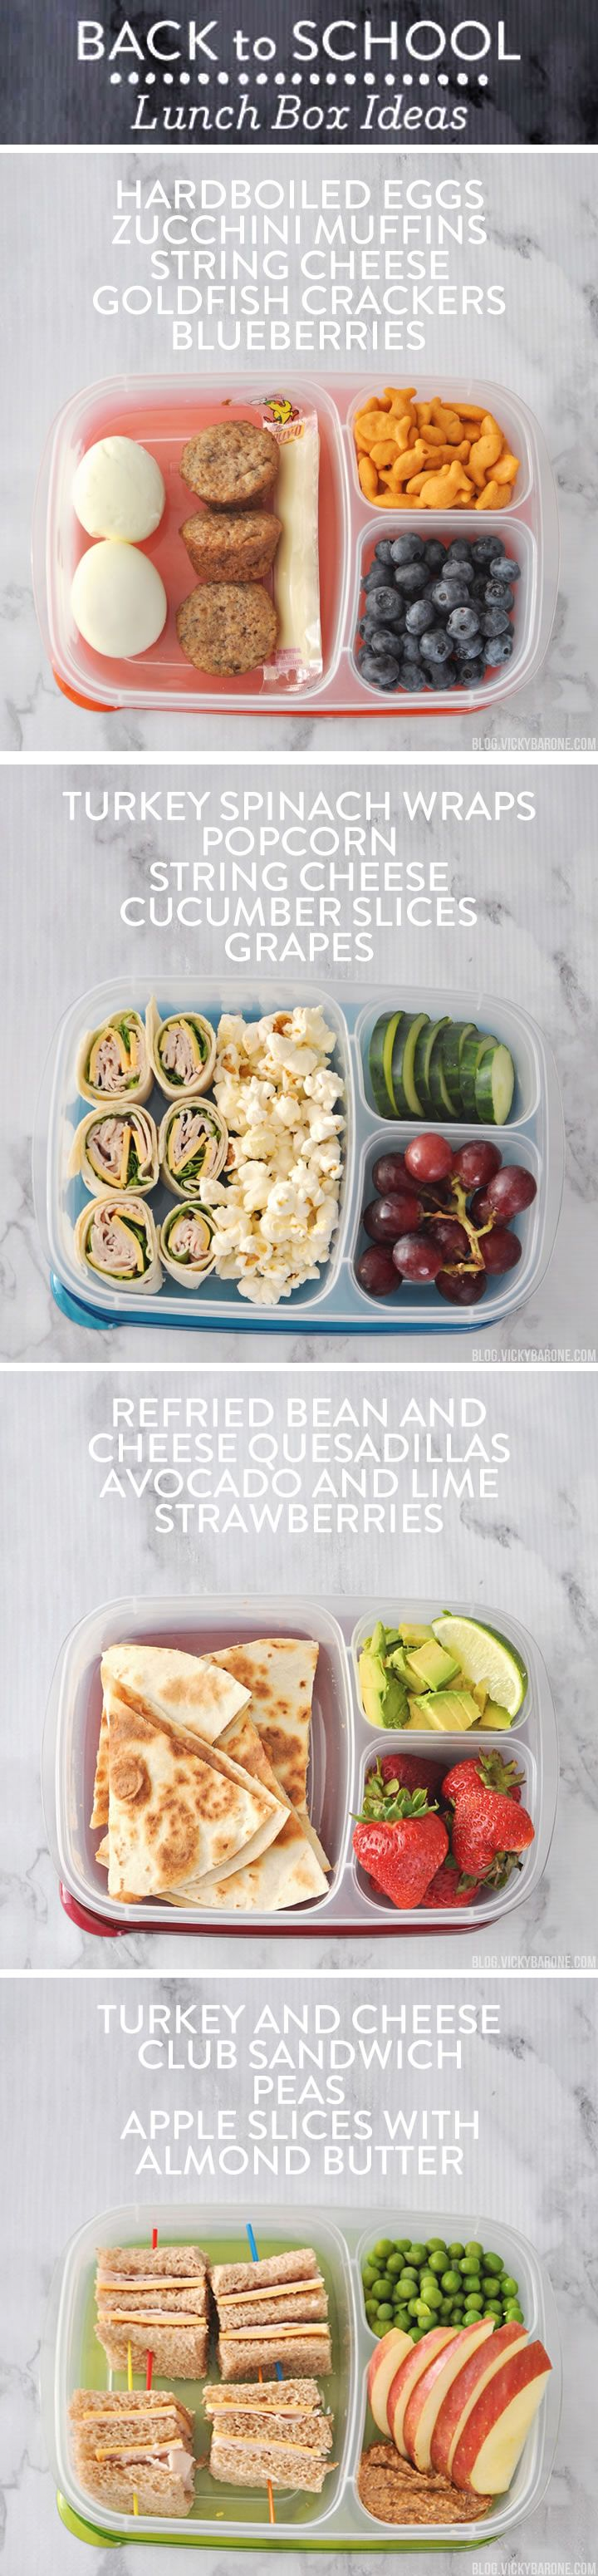 Yummy packed lunch ideas for when you're stumped on what to send your kiddo to school with. These lunch combinations have fruits, veggies, and protein to give your little ones the nutrition and energy to tackle the day without sacrificing taste. #ad